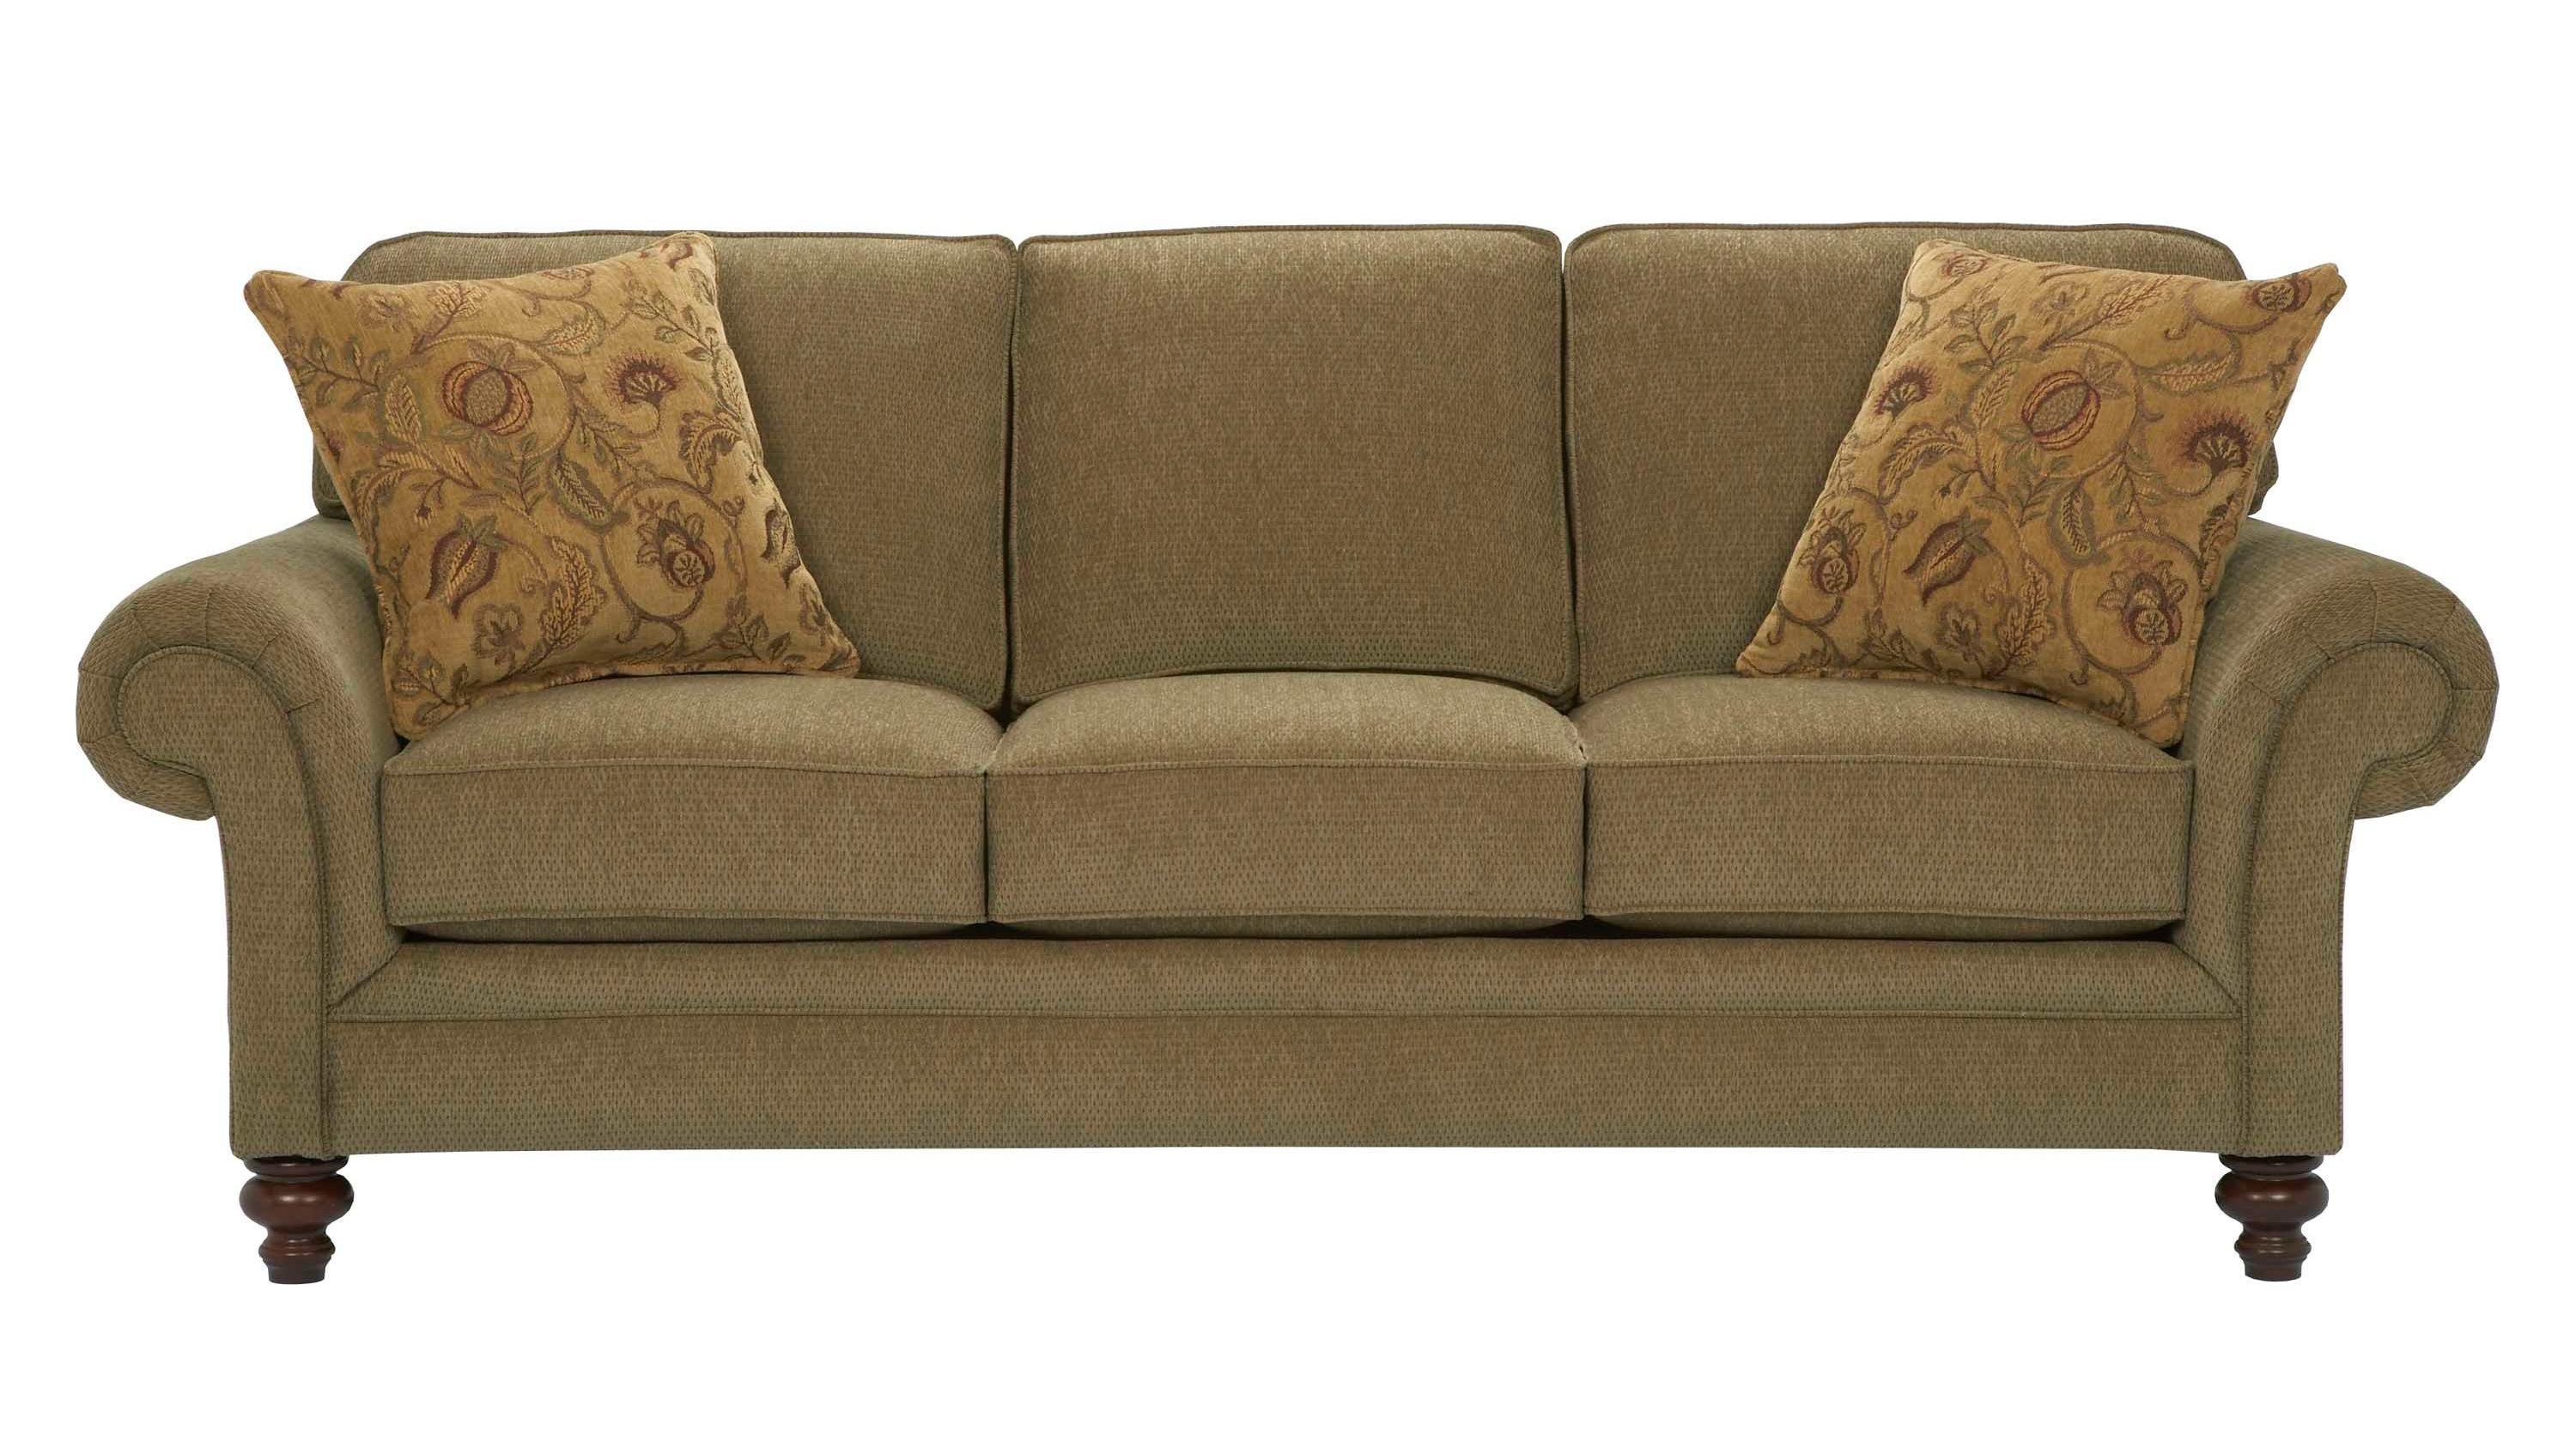 50 Broyhill Sectional Sofa, Broyhill Furniture Audrey Sofa 37623 with regard to Broyhill Sofas